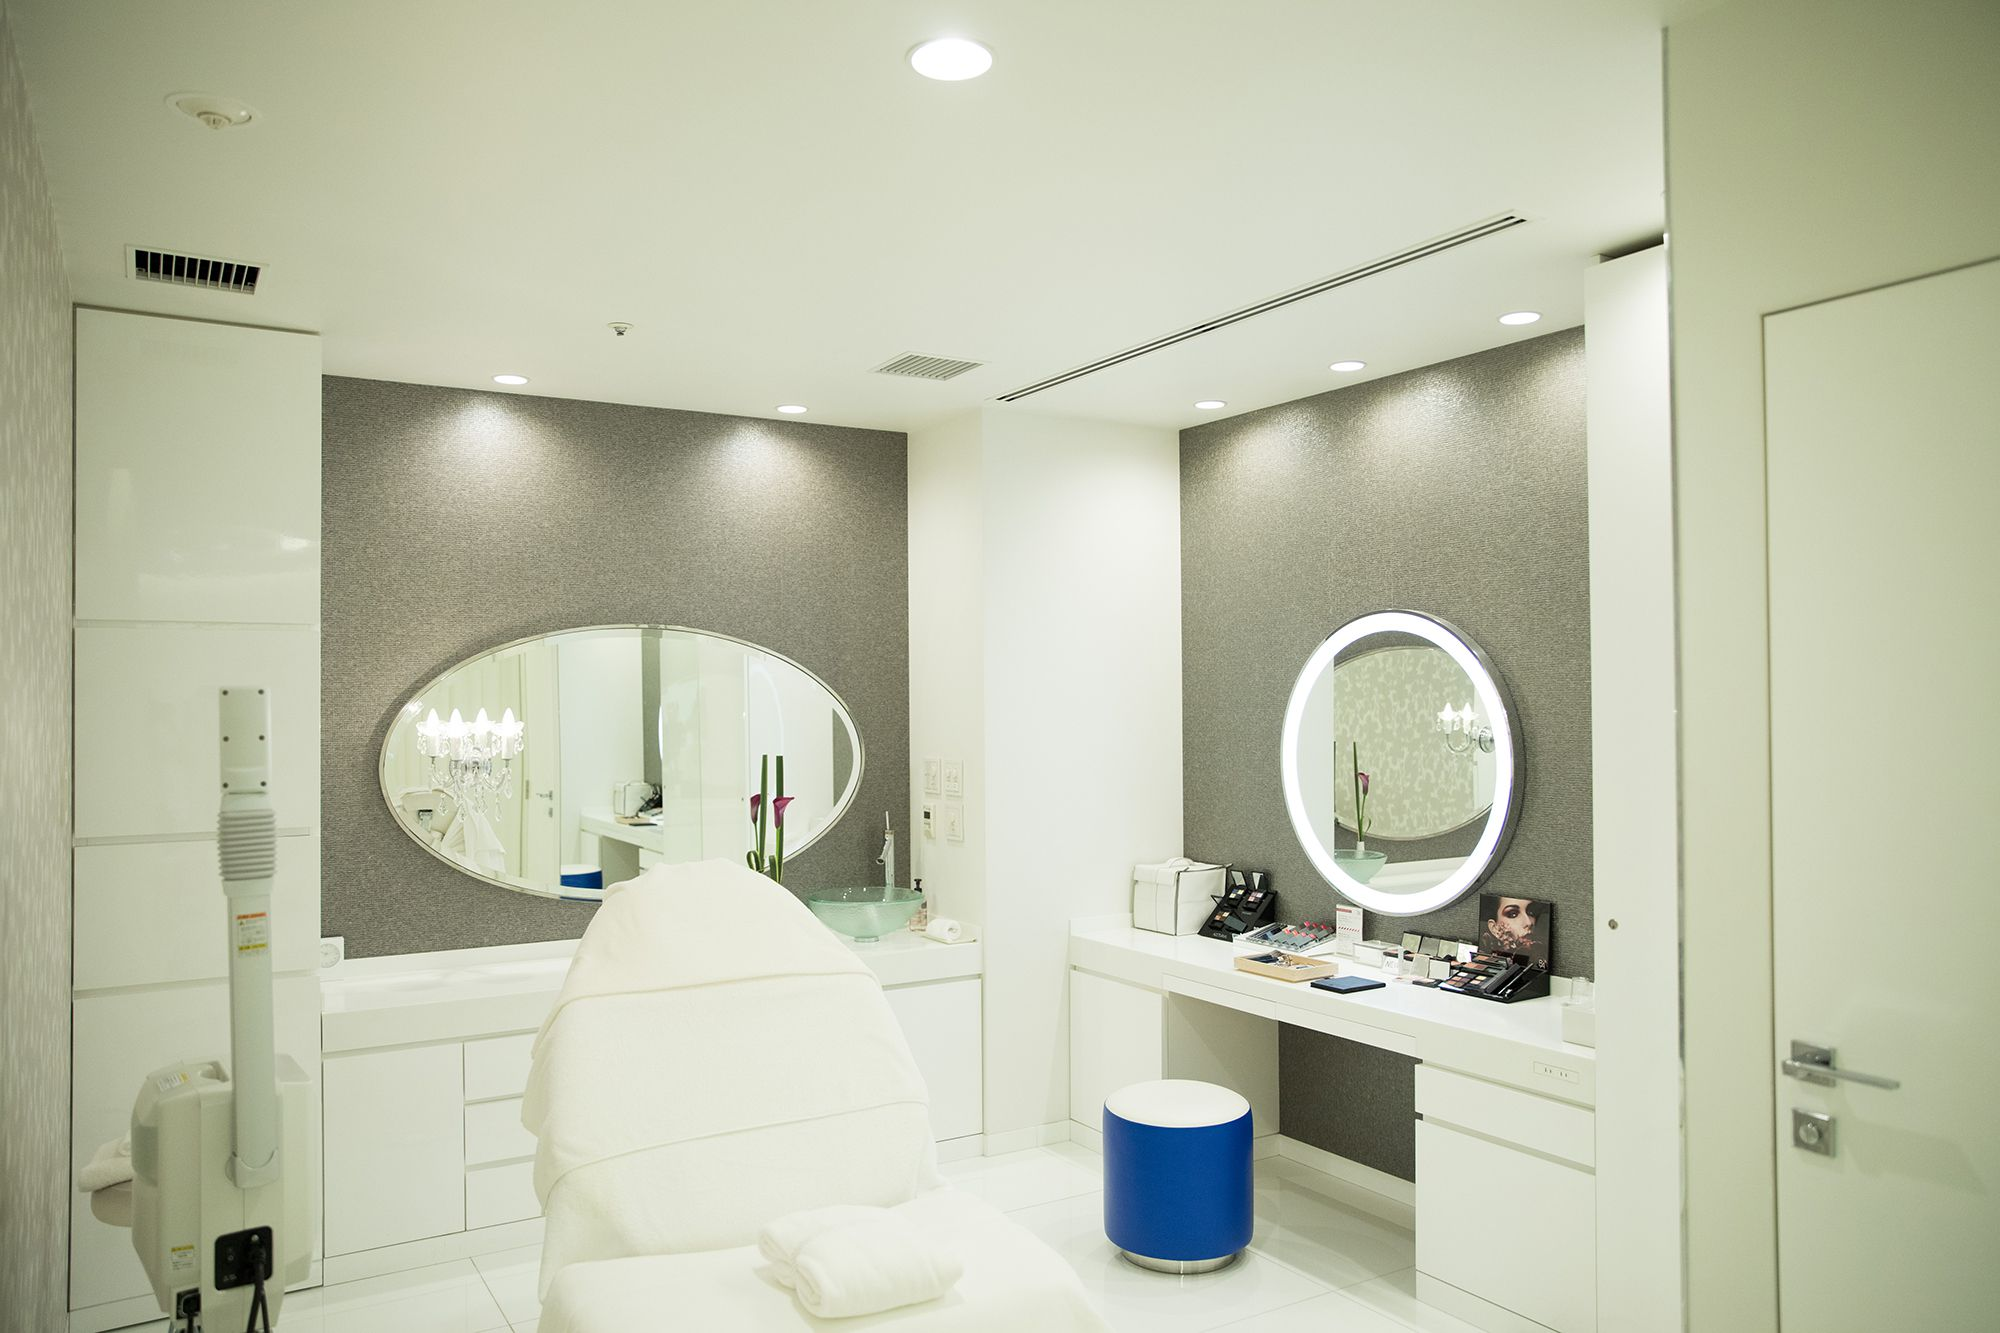 The Beauty Treatment Room is on the Basement Level. The popular course is B.A Premium L